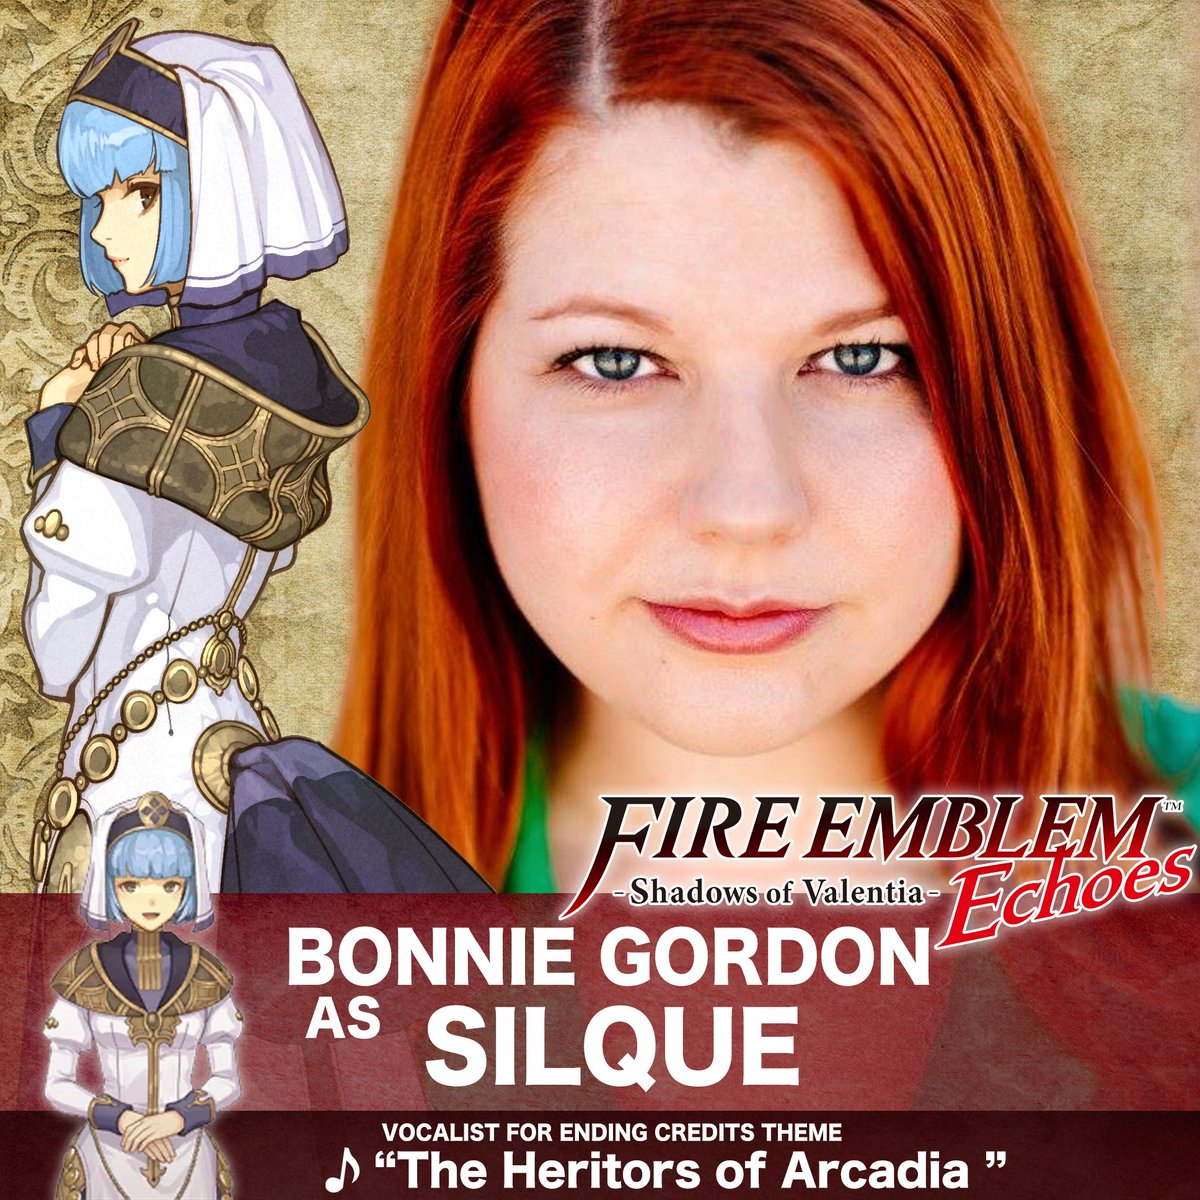 bonnie gordon on twitter announcement day excited to say i m the